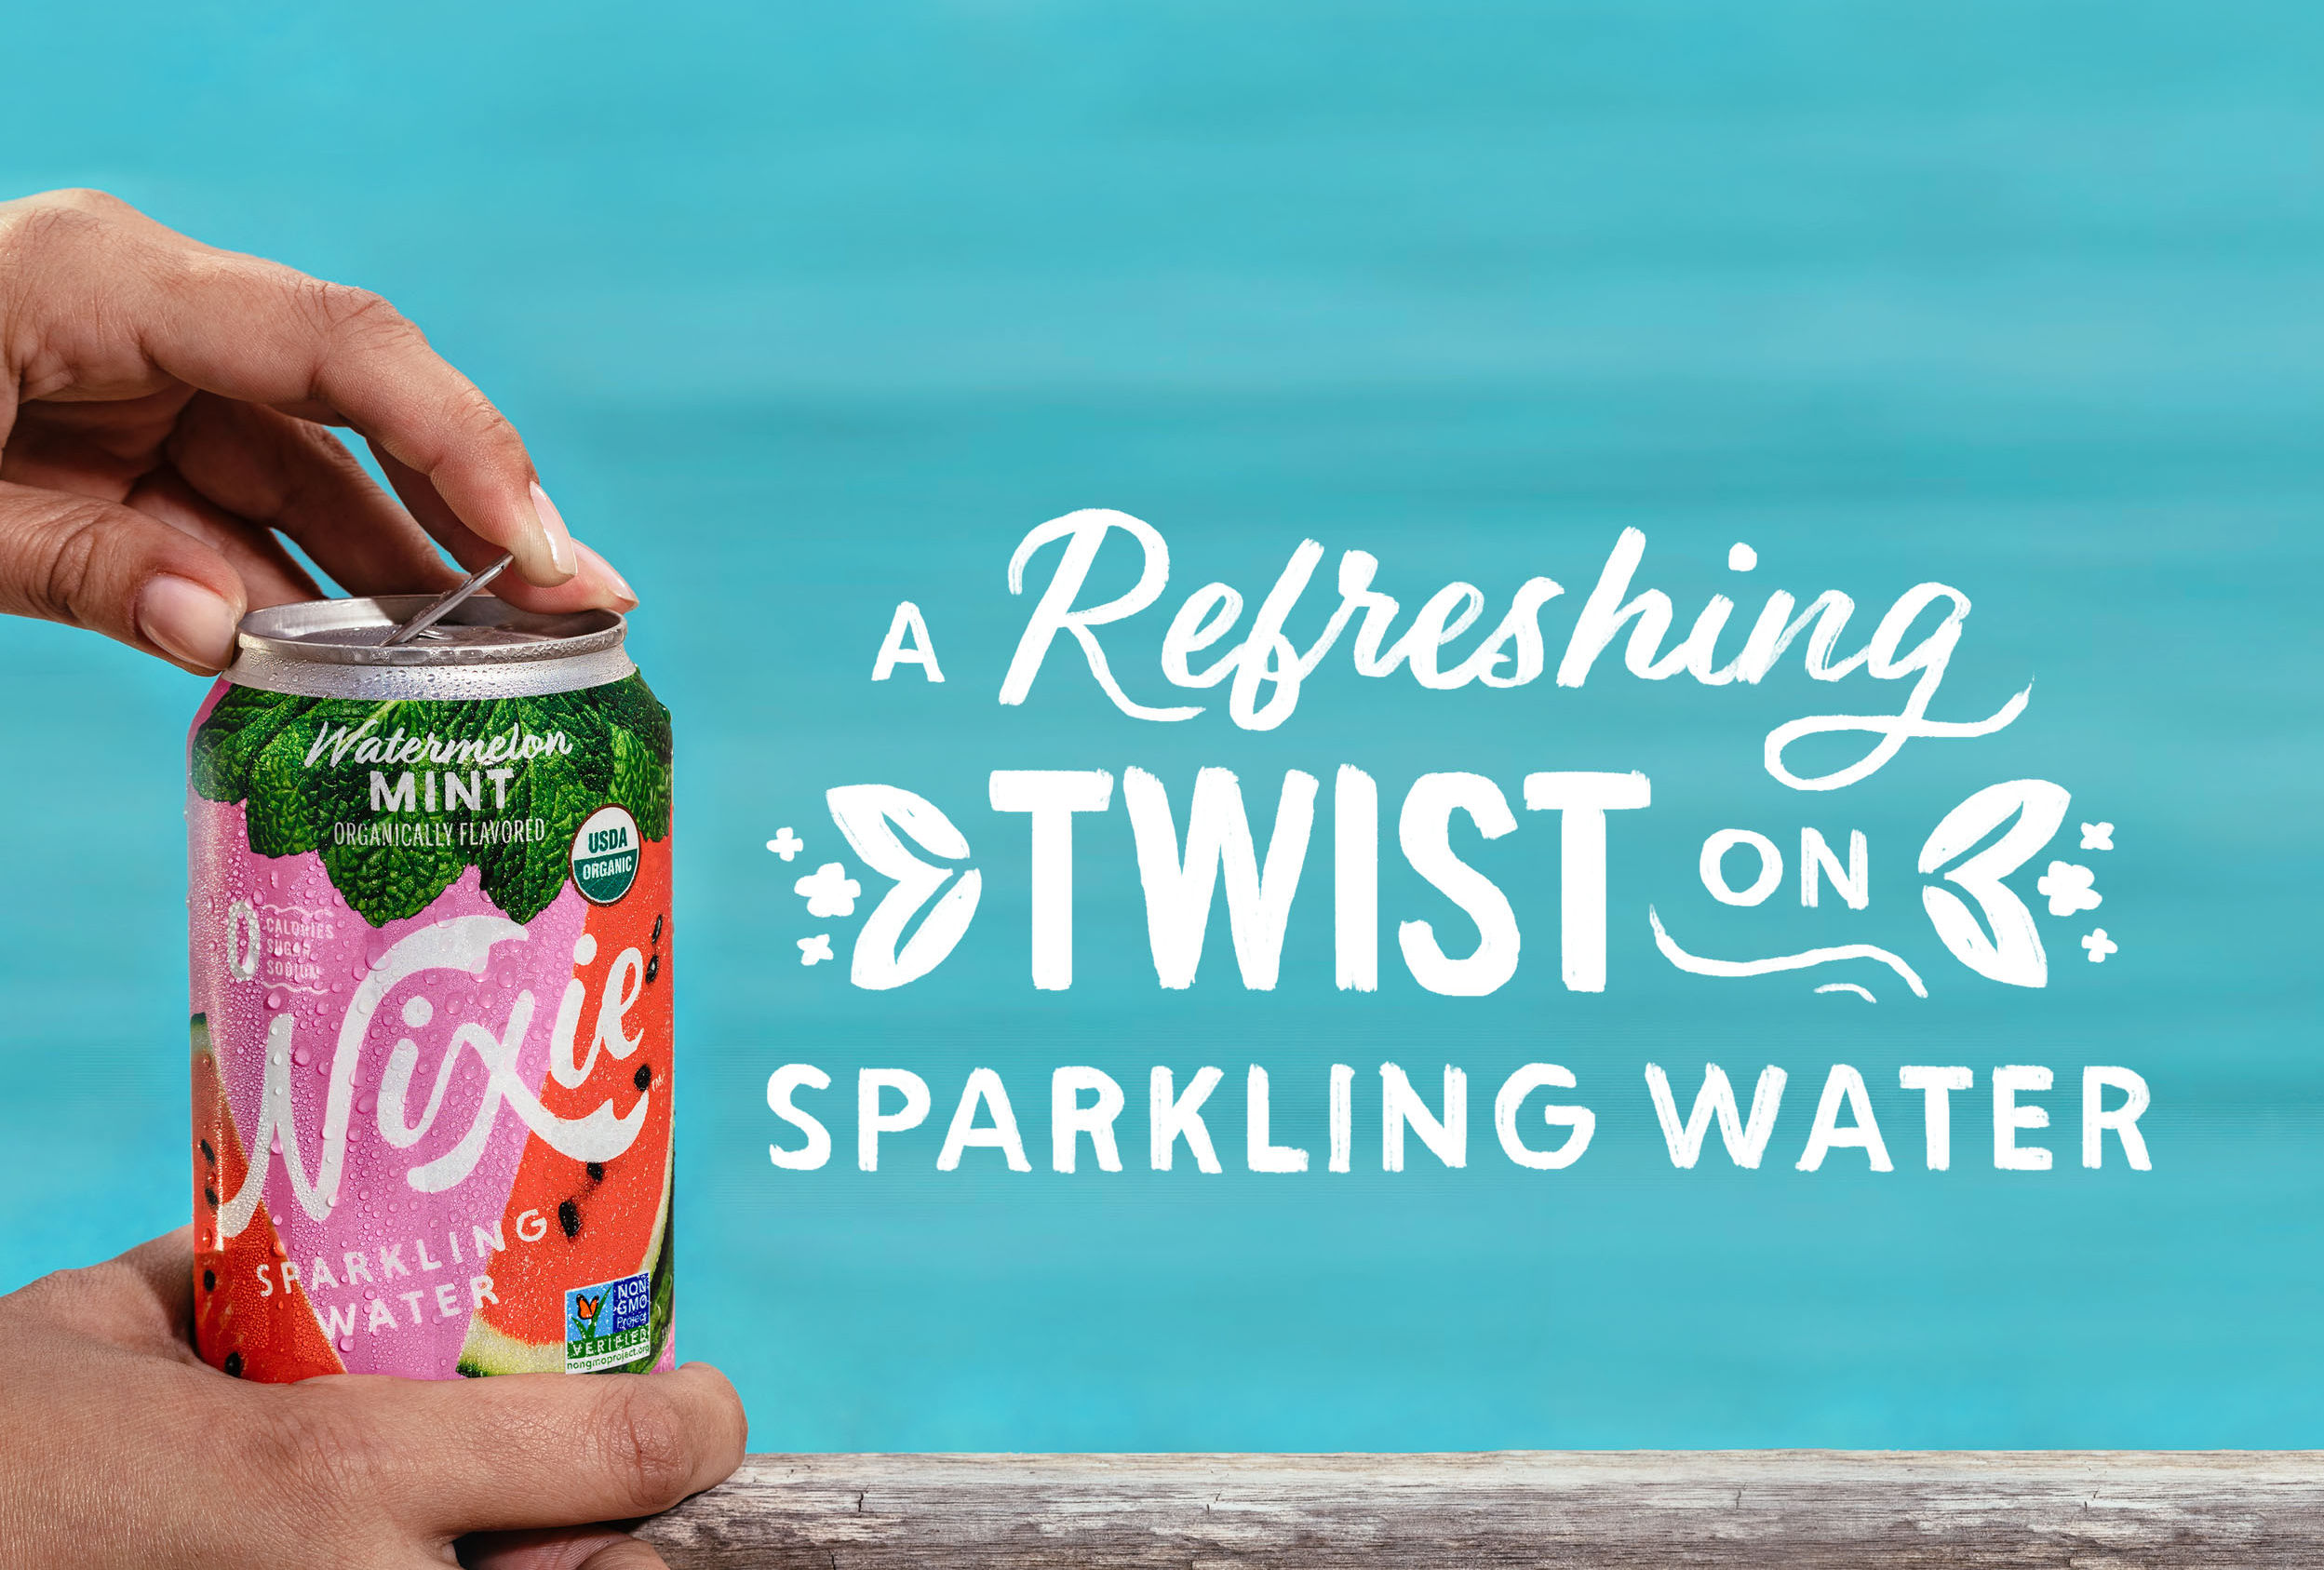 A Refreshing Twist on Sparkling Water